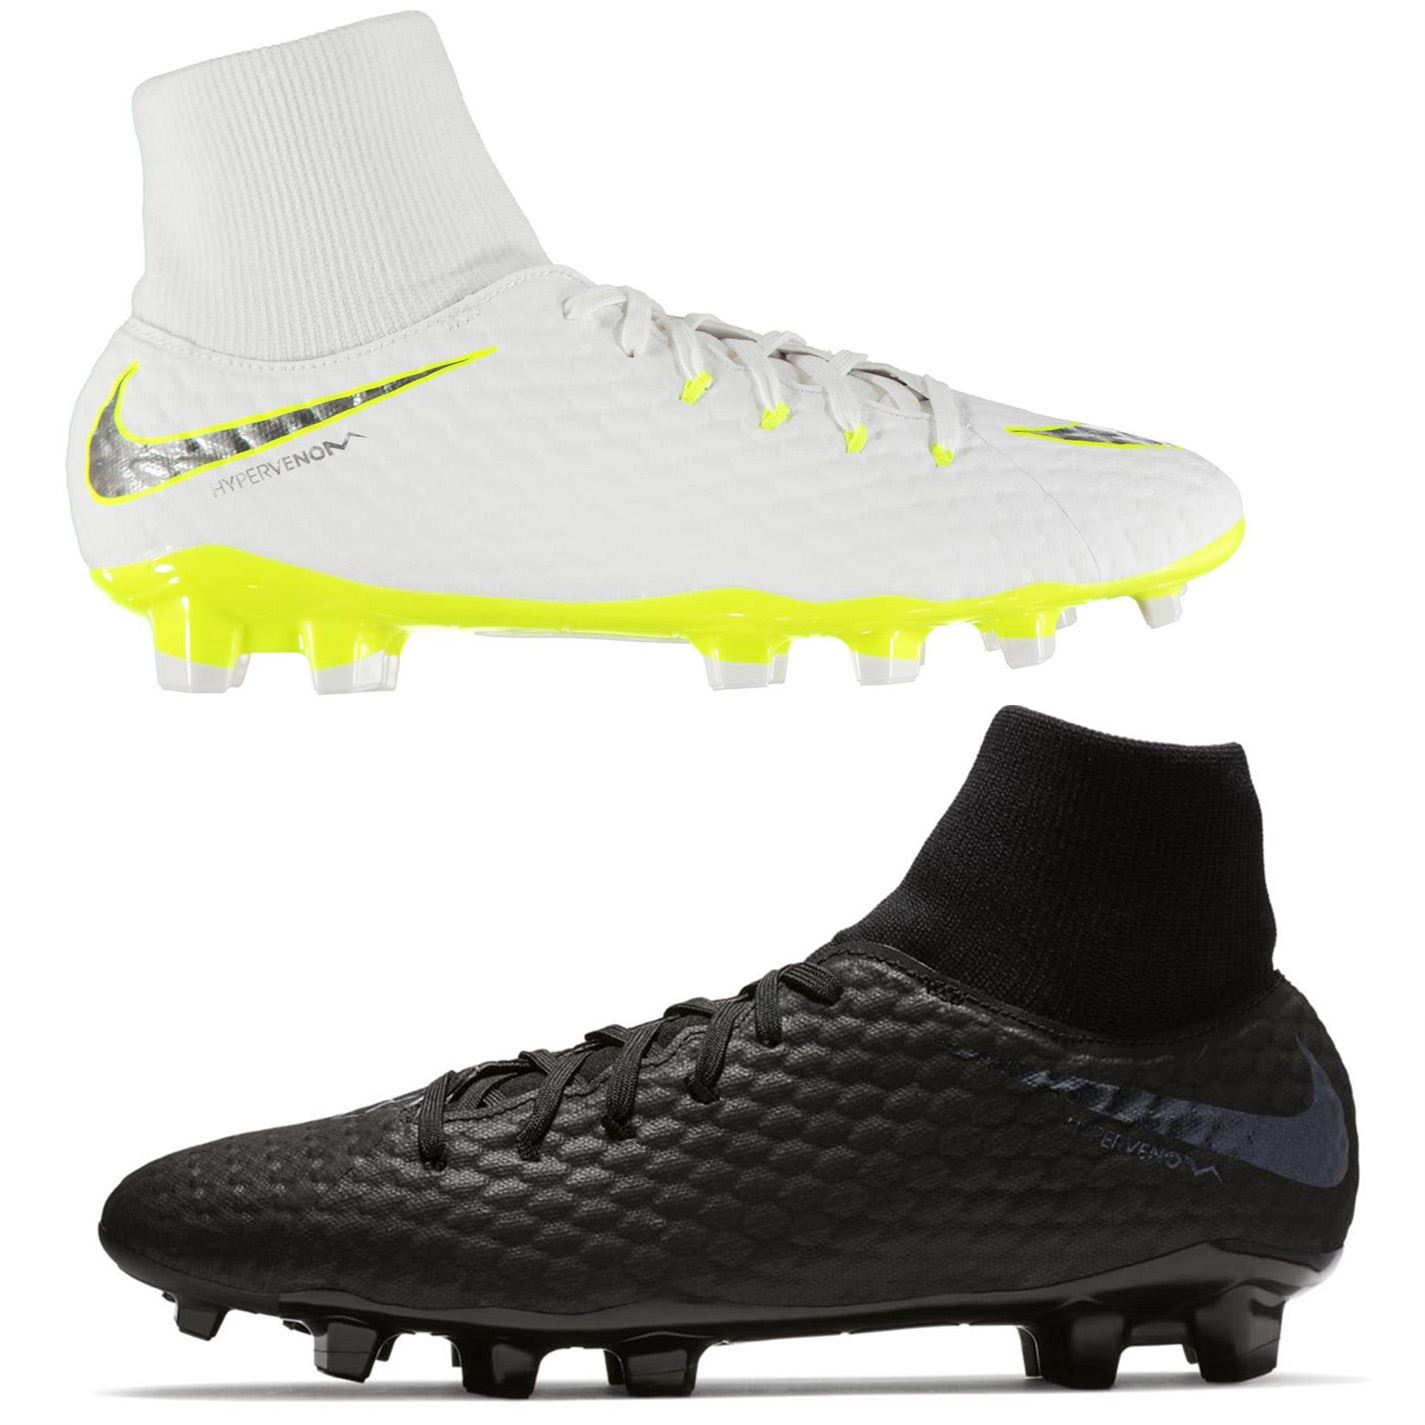 90a71e511 ... Nike Hypervenom Phantom Academy DF Firm Ground Football Boots Mens Soccer  Cleats ...